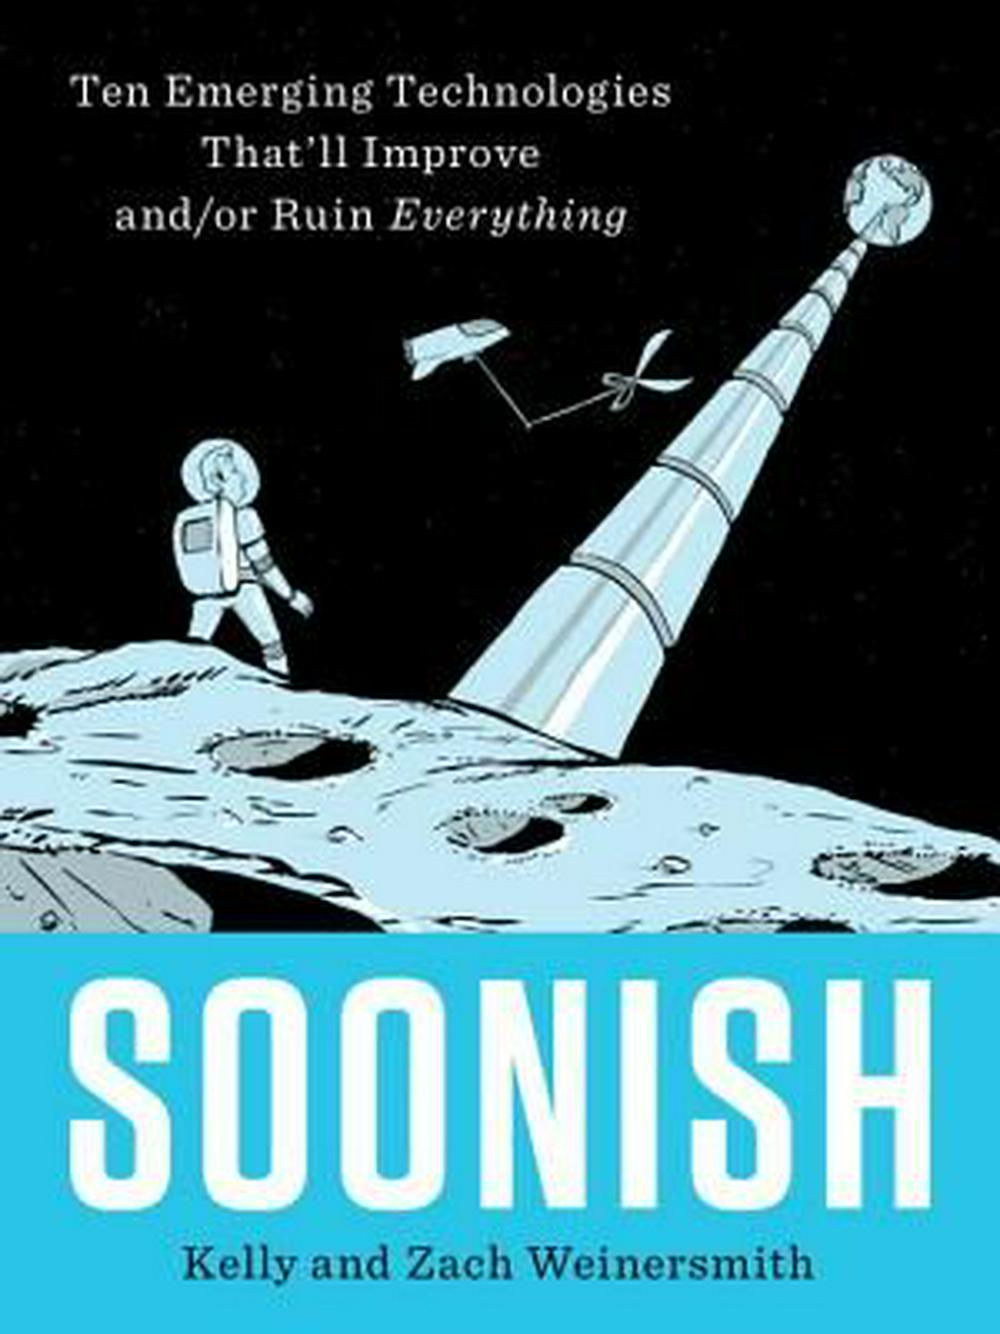 Soonish by Kelly and Zach Weinersmith, ISBN: 9780399563829